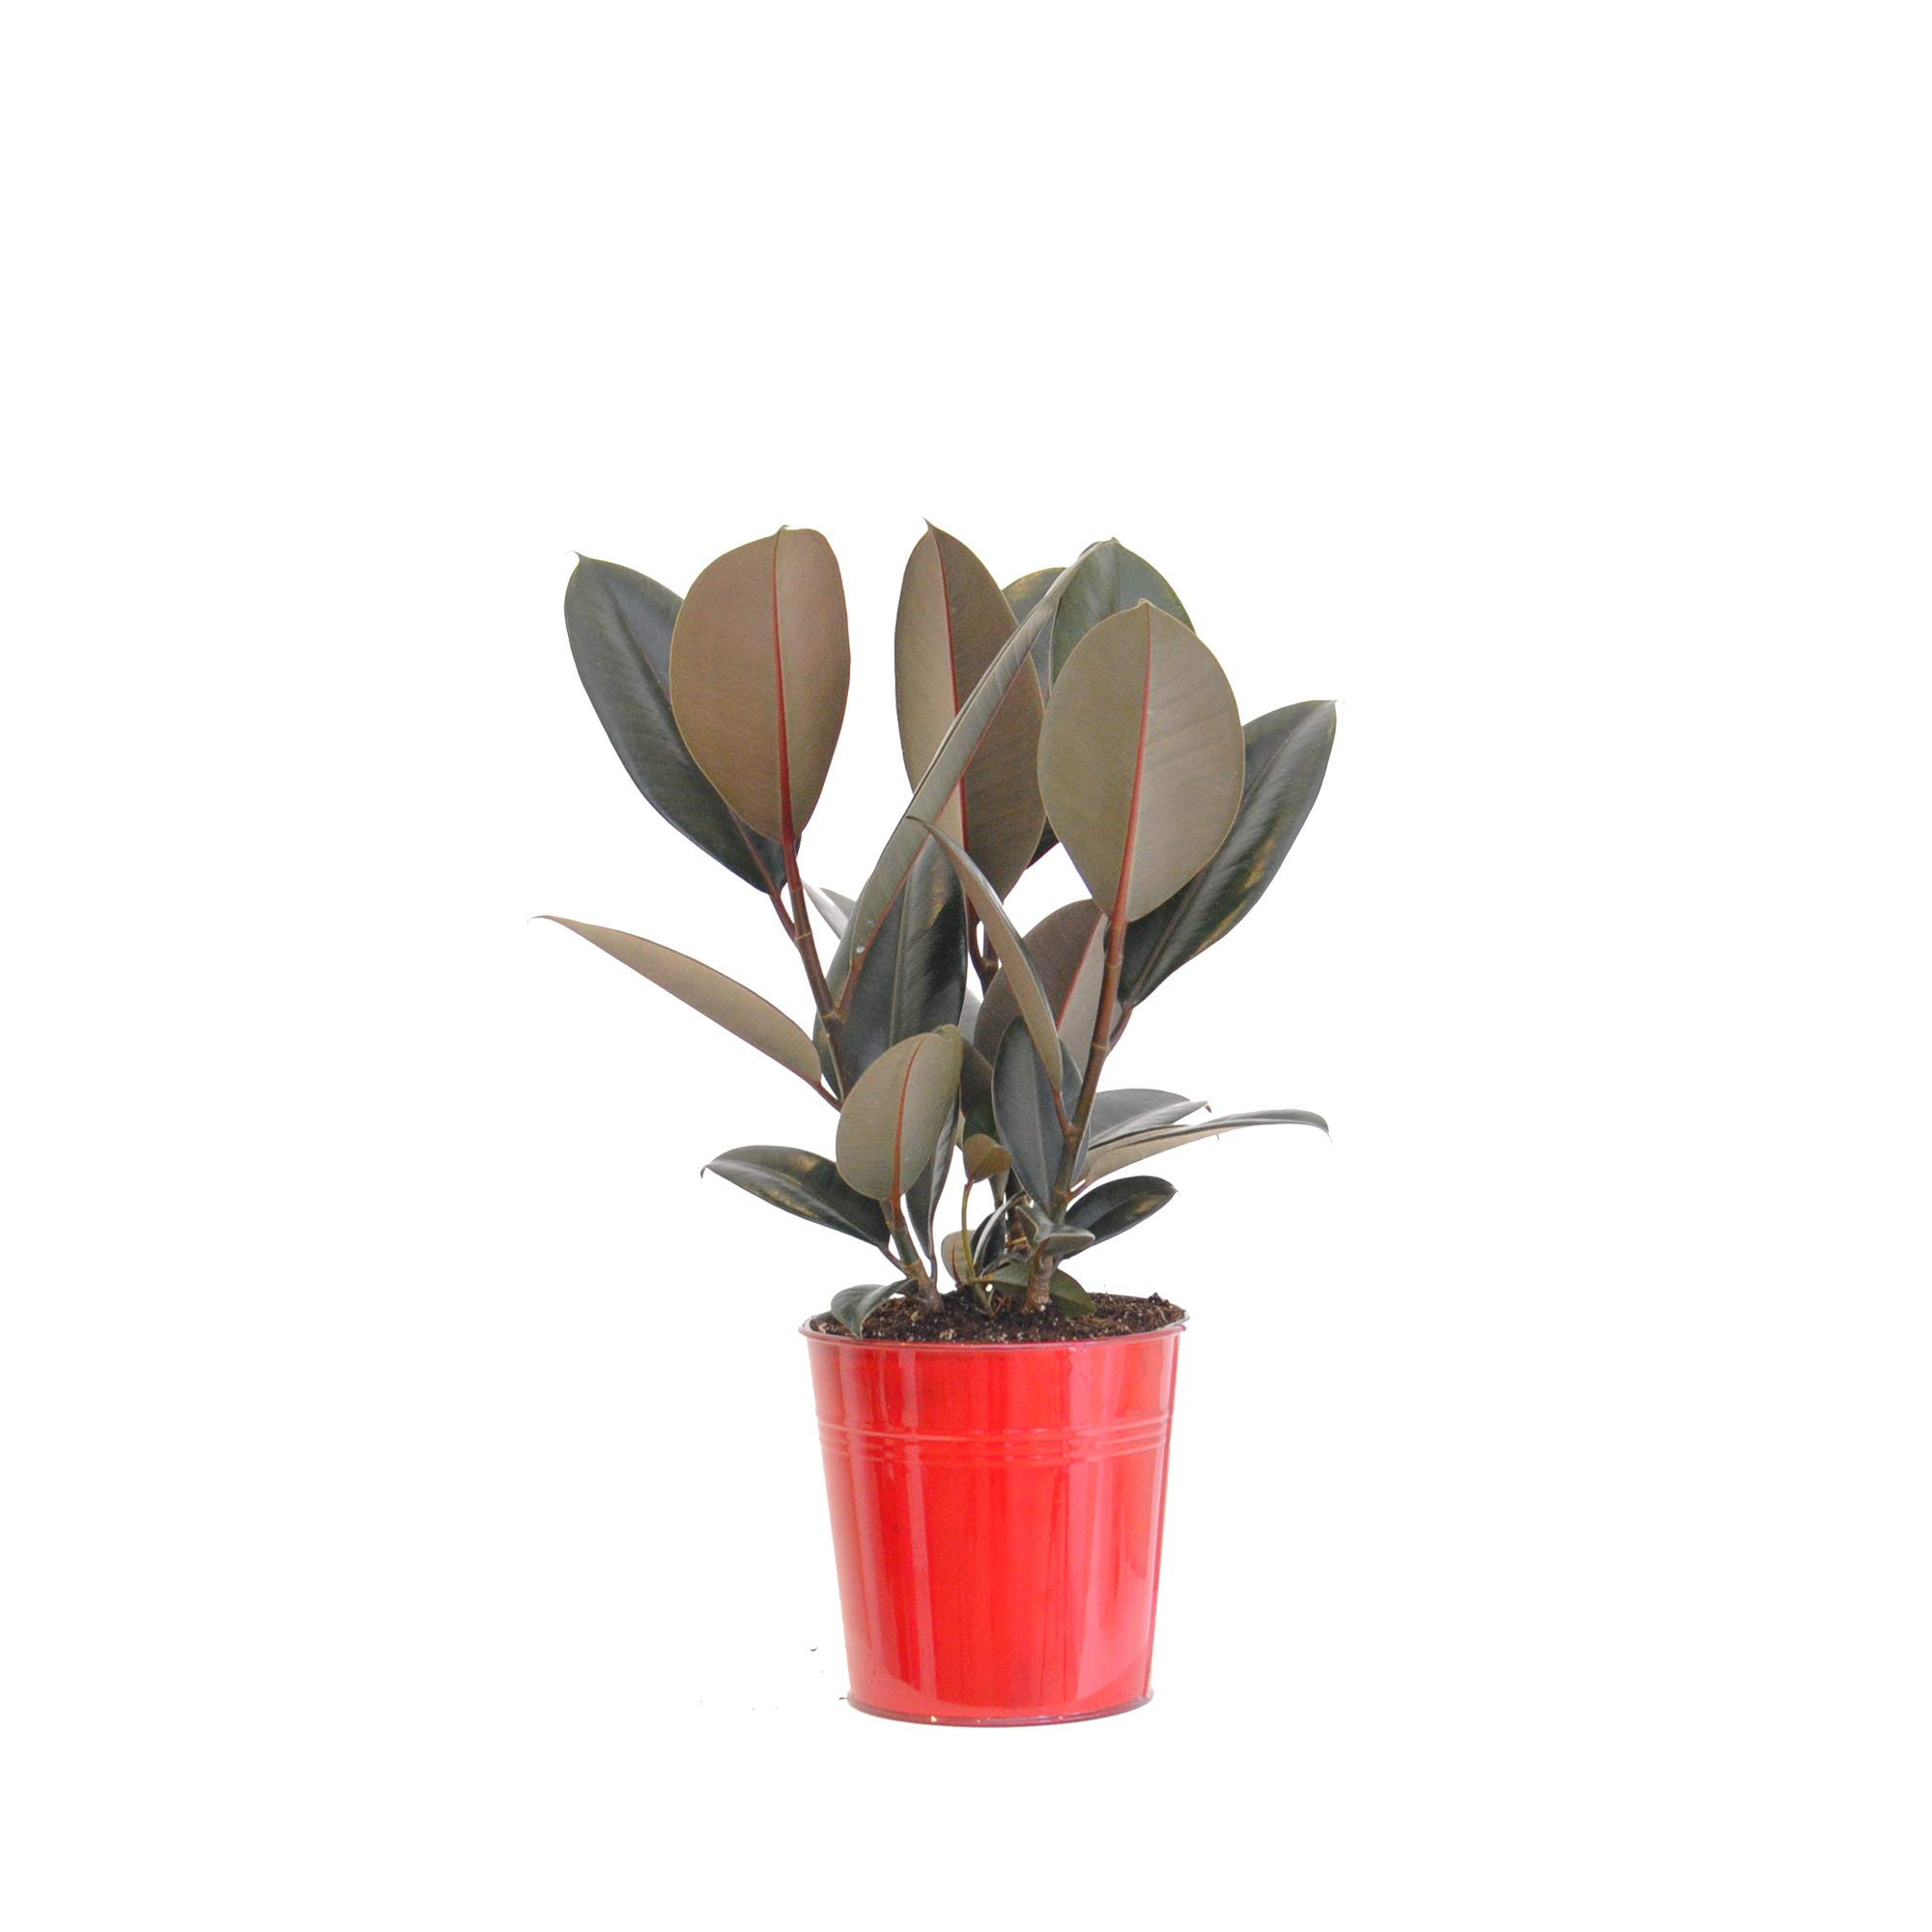 United Nursery Ficus Elastica Burgandy Live Rubber Plant Indoor Houseplant in 6 inch Red Tin Pot 16-19 Inches